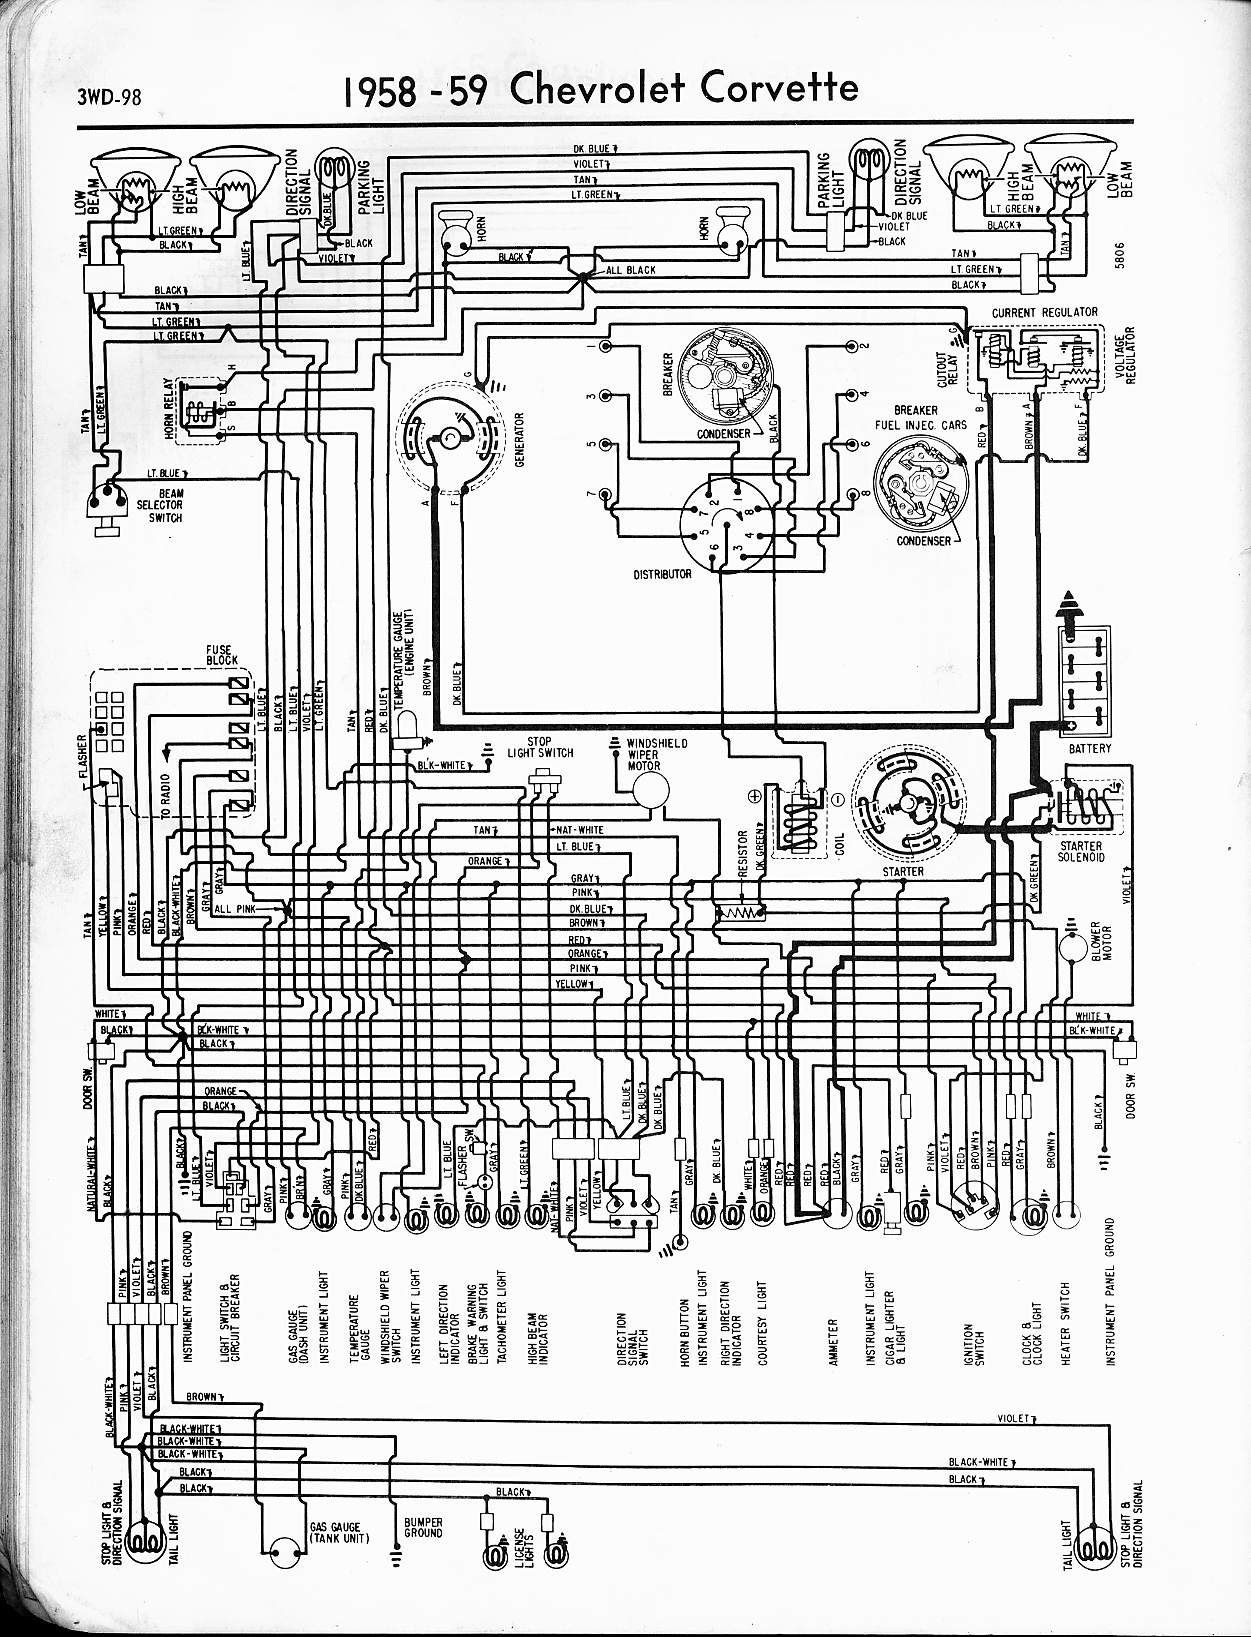 amazing 65 chevy c10 wire diagram ideas electrical and wiring Wiring-Diagram 1974 Chevy C 65 65 chevy c10 wire diagram Chevy Truck Fuse Diagram 1974 Chevy C10 Wiring Diagram 67 Chevy Truck Wiring Diagram